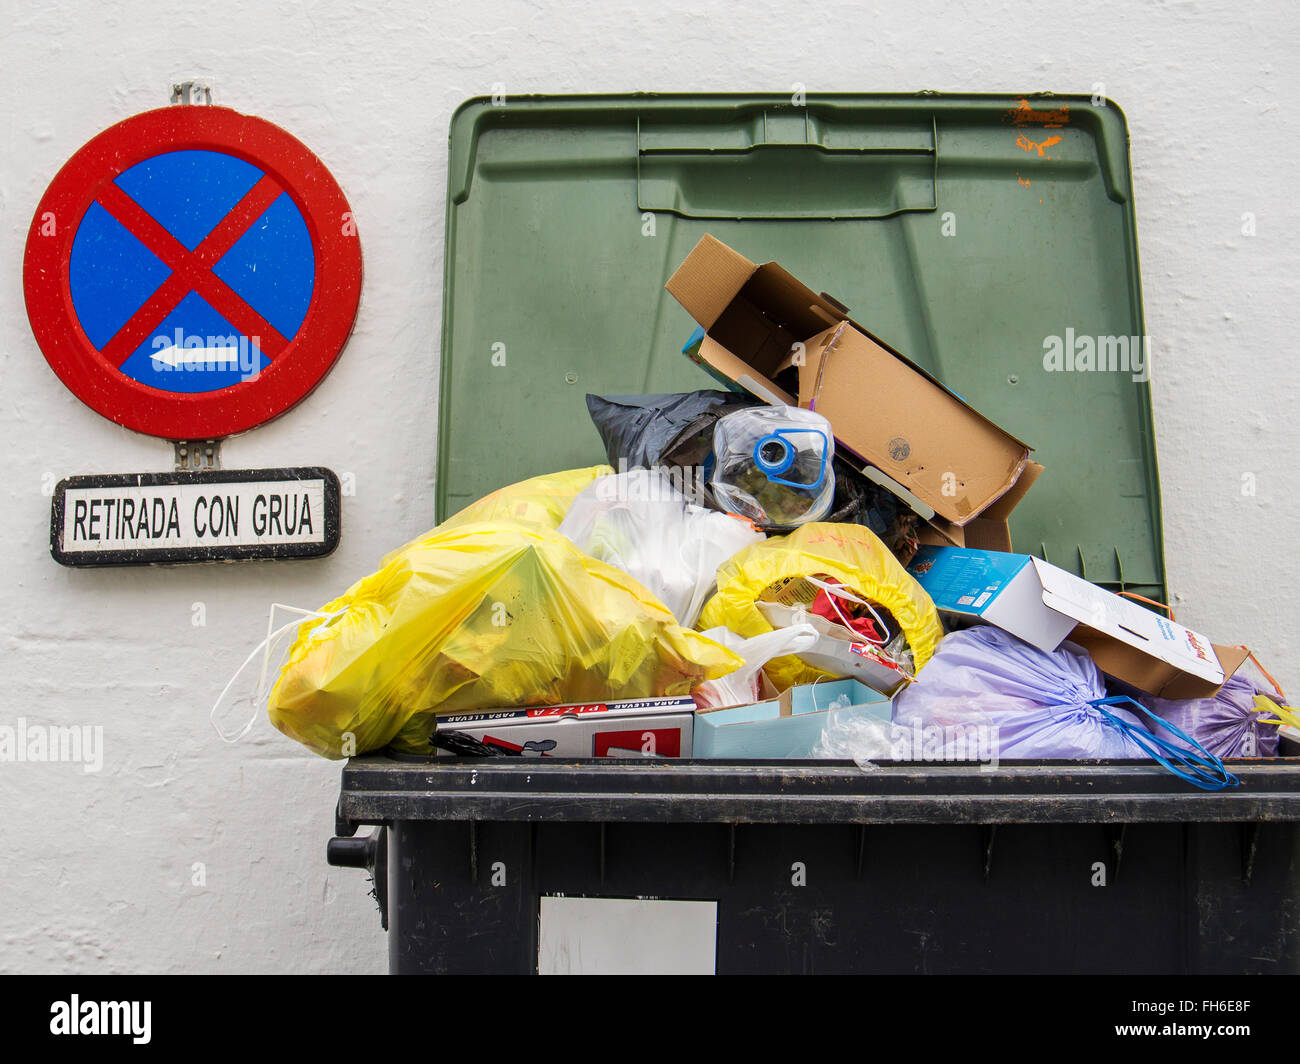 Overflowing Rubbish Bin Dumpster - Stock Image